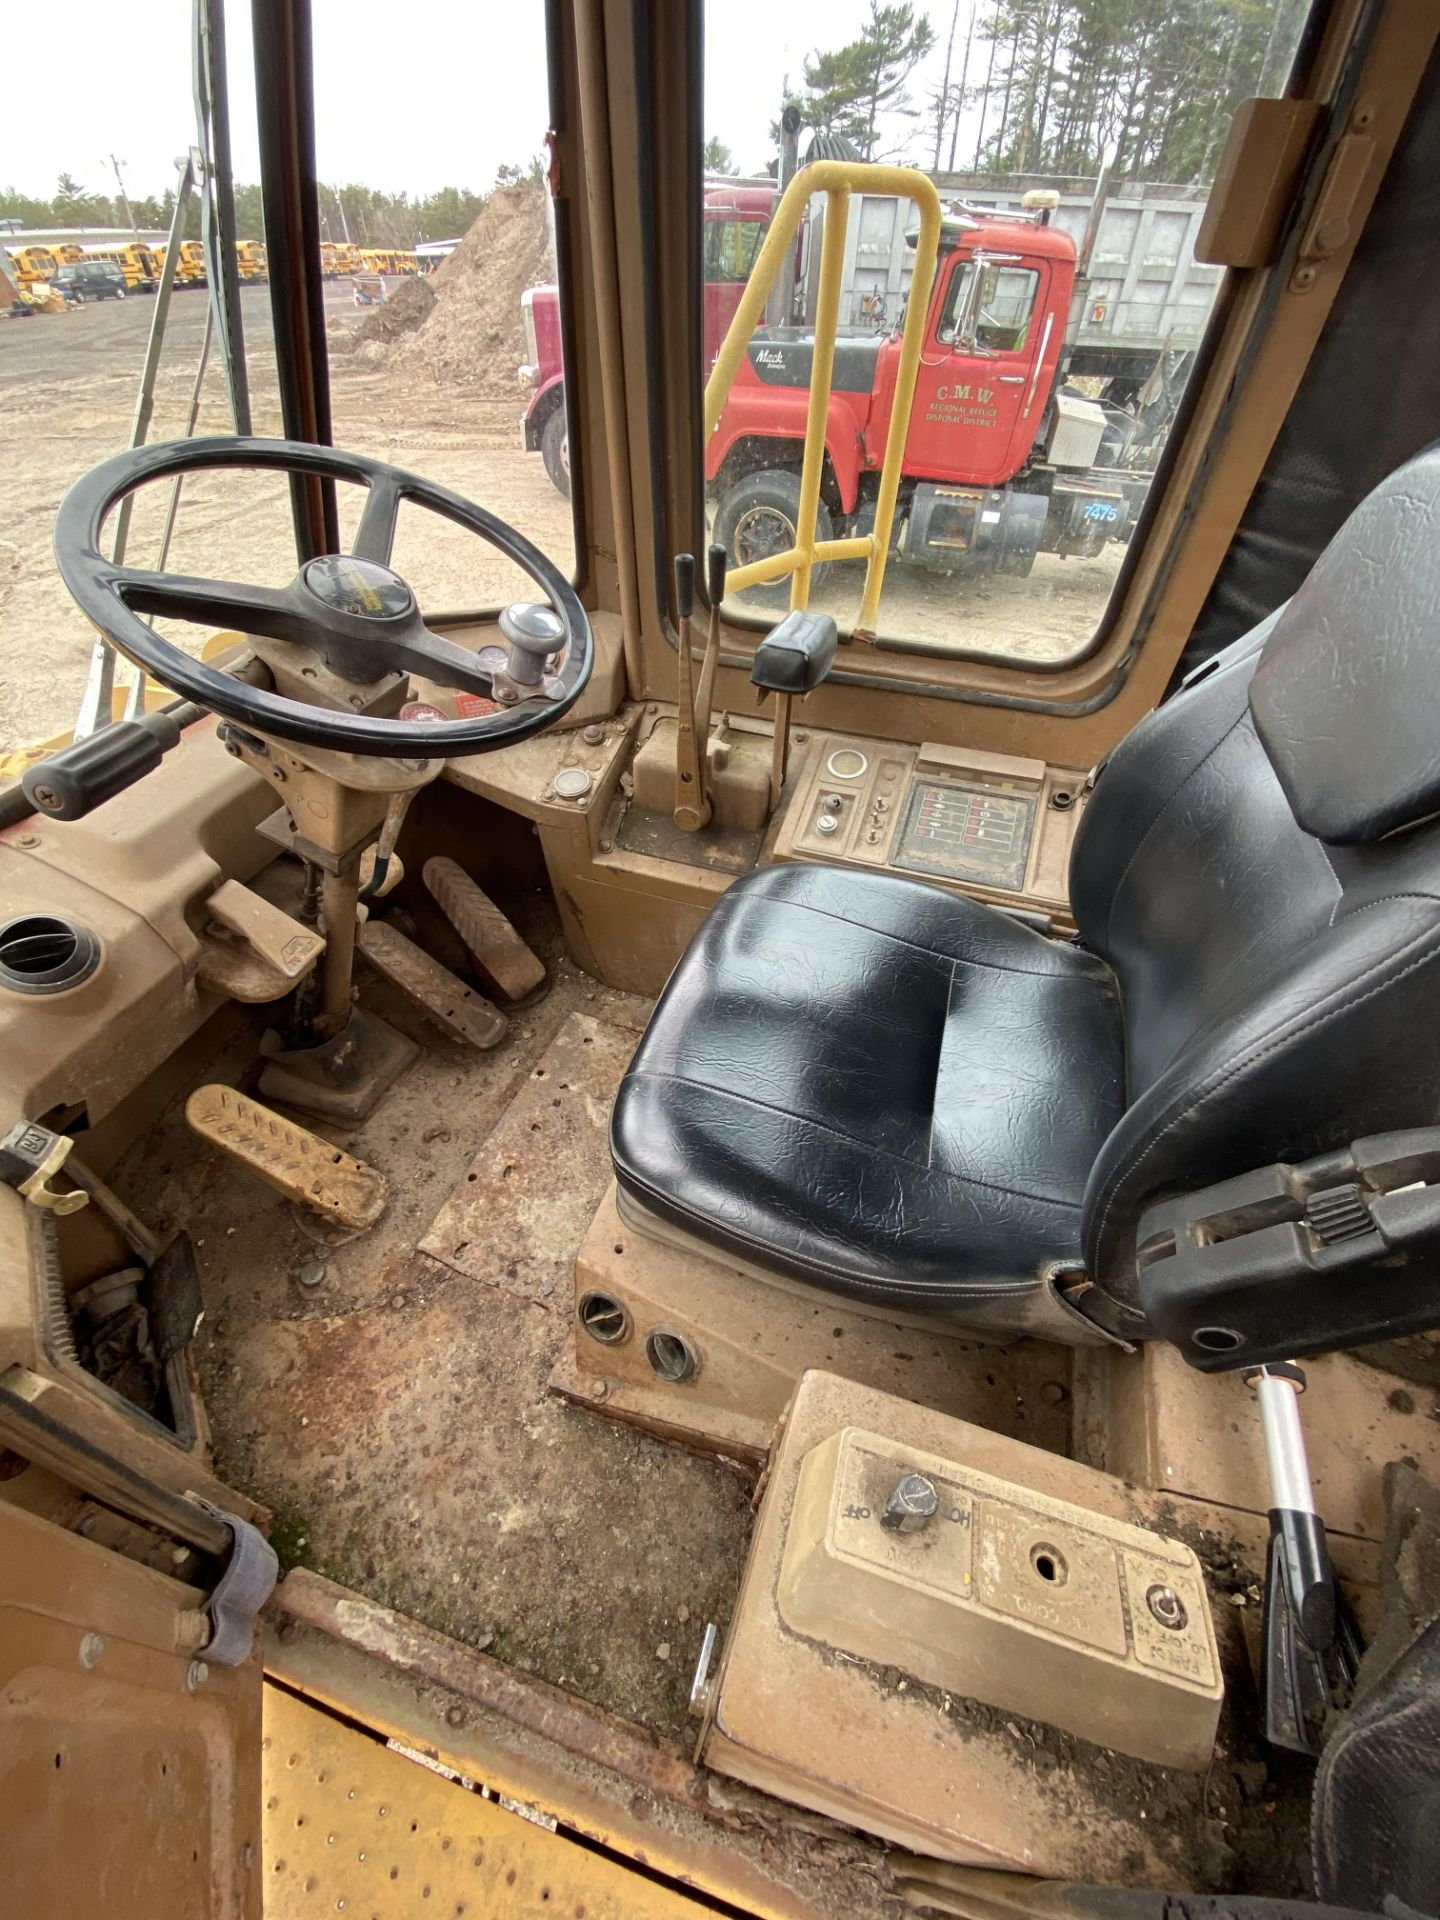 1980 Caterpillar 966D Wheel Loader s/n 99Y02108, Meter Reads 4,664 Hours, Have Title - Image 21 of 23